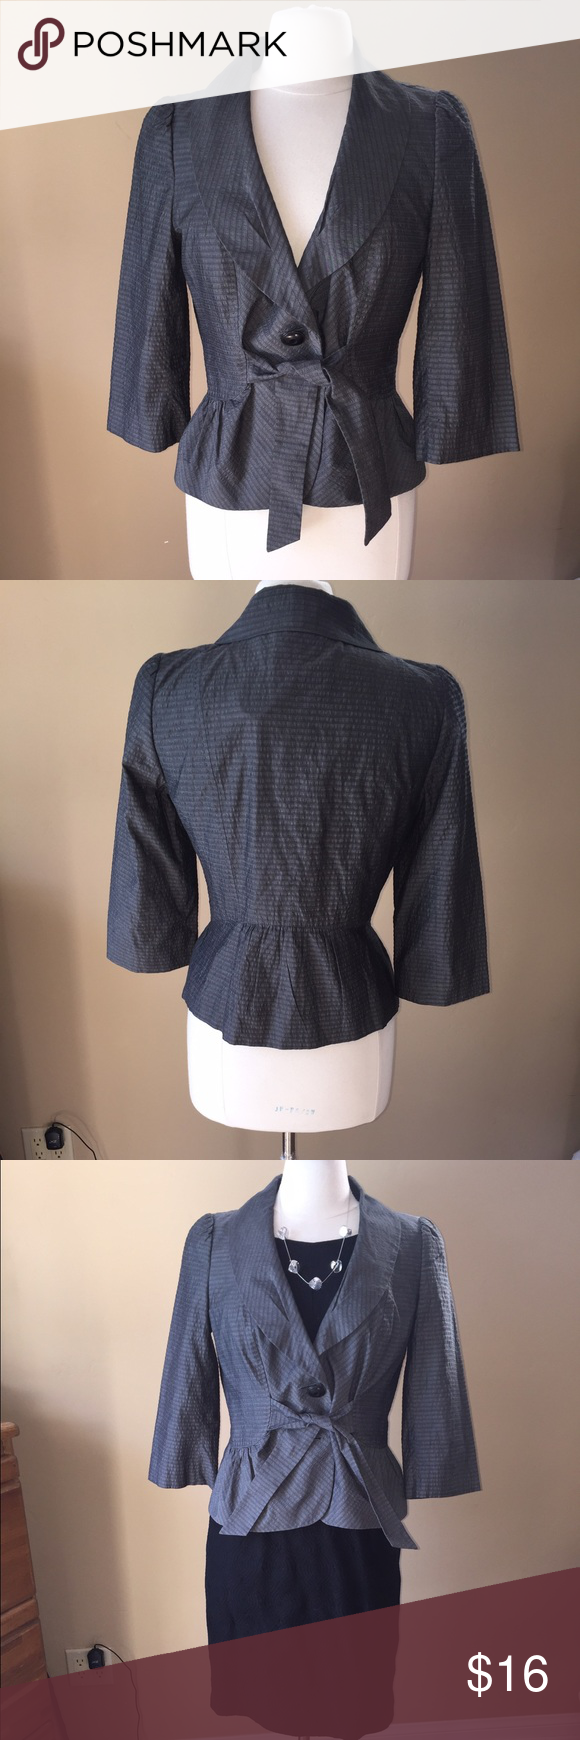 Classifies Entier Nordstroms Gray Jacket Lined jacket with button front, tie and gathers at waist. Two button closure, but the bottom button is missing - does not show when tied; easy to replace the two buttons, if desired. Third photo shows jacket styled with Karin Stevens dress sold under separate listing. Shown on size 6/8 mannequin (mannequin measures 37-26-37)👗👚👜Check out the $6 section of my closet (before the sold items). Lots of bundle-worthy $6 items! 15% bundle discount on 2…